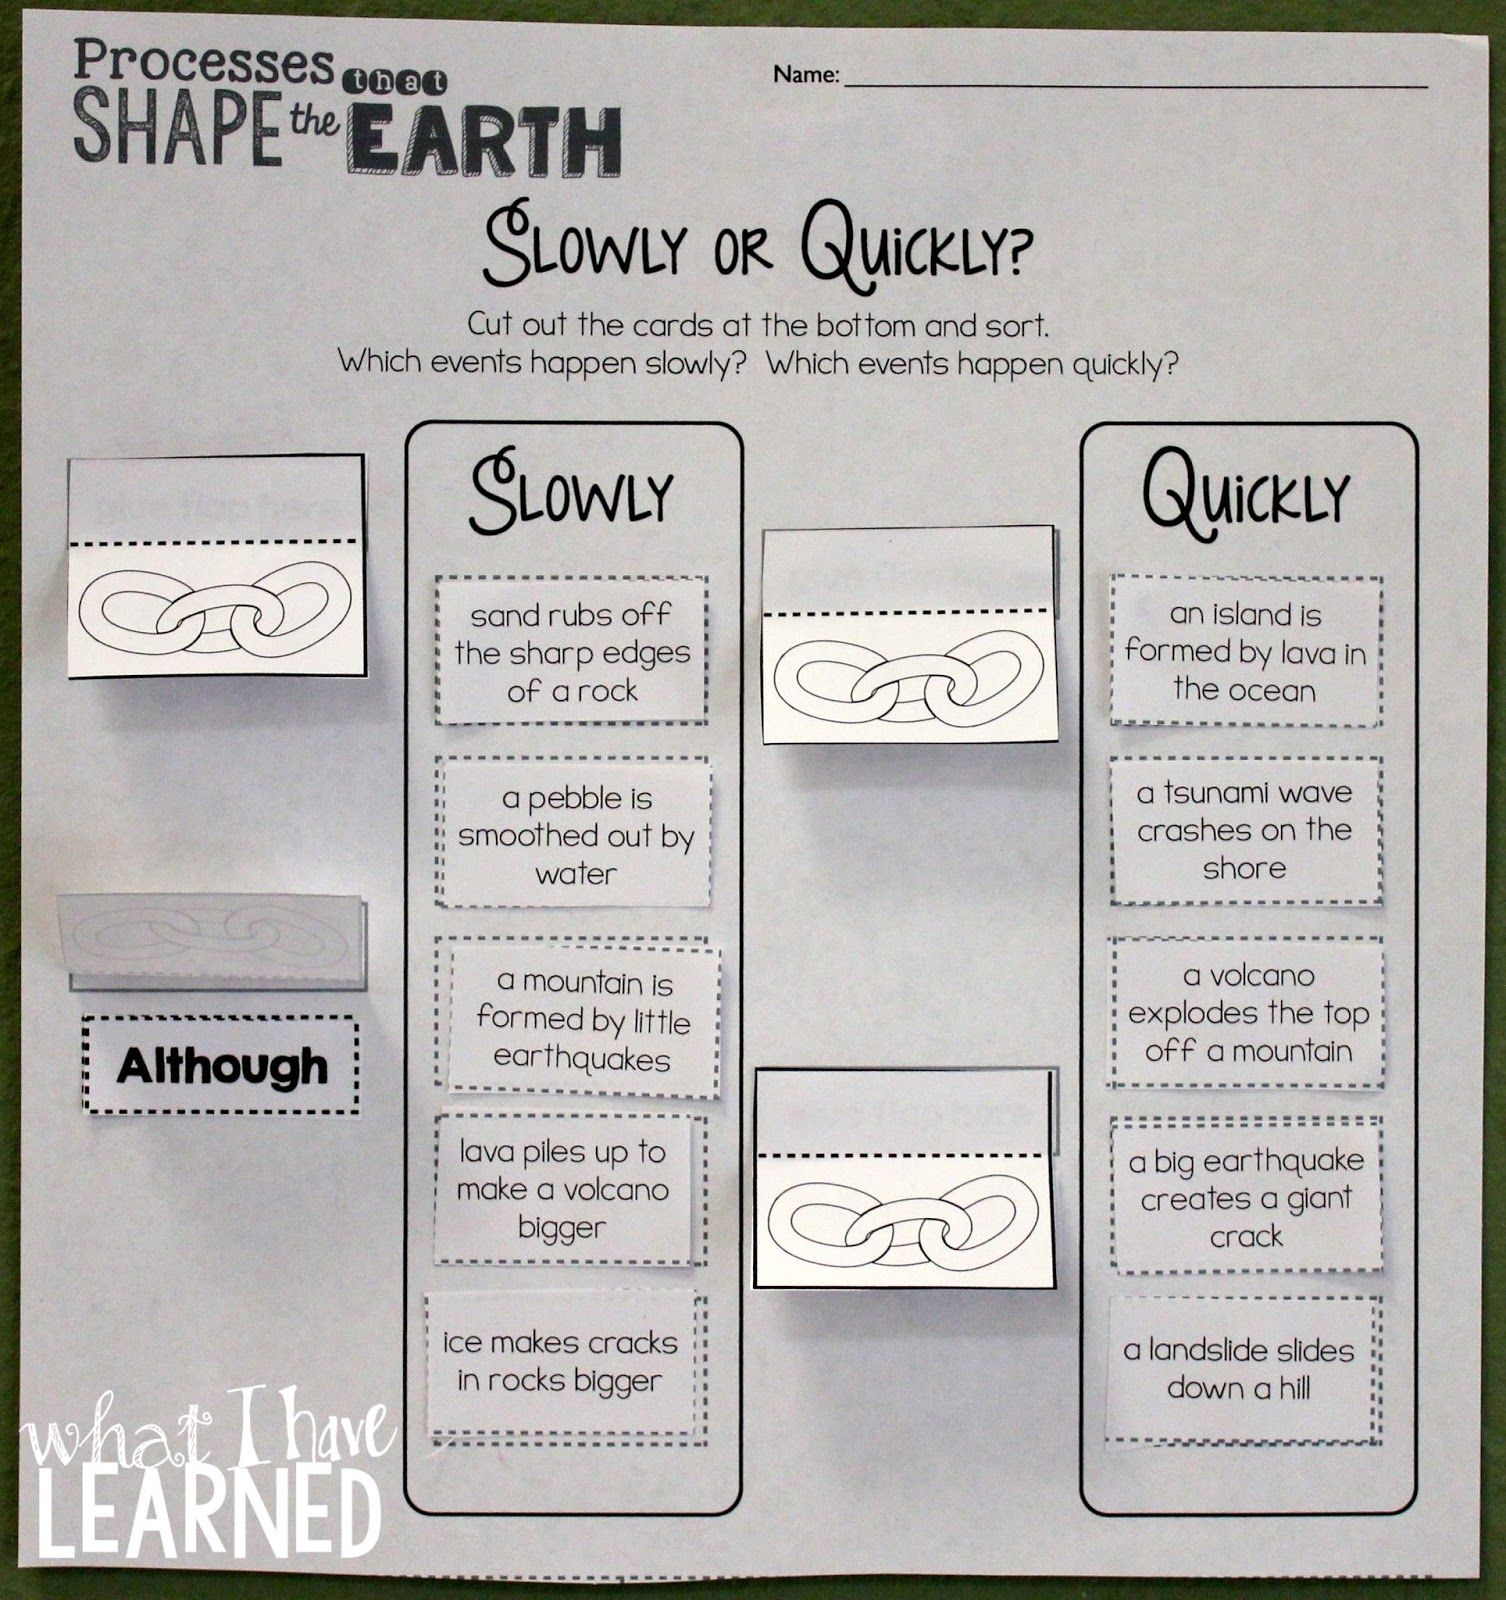 What I Have Learned Earth S Systems Processes That Shape